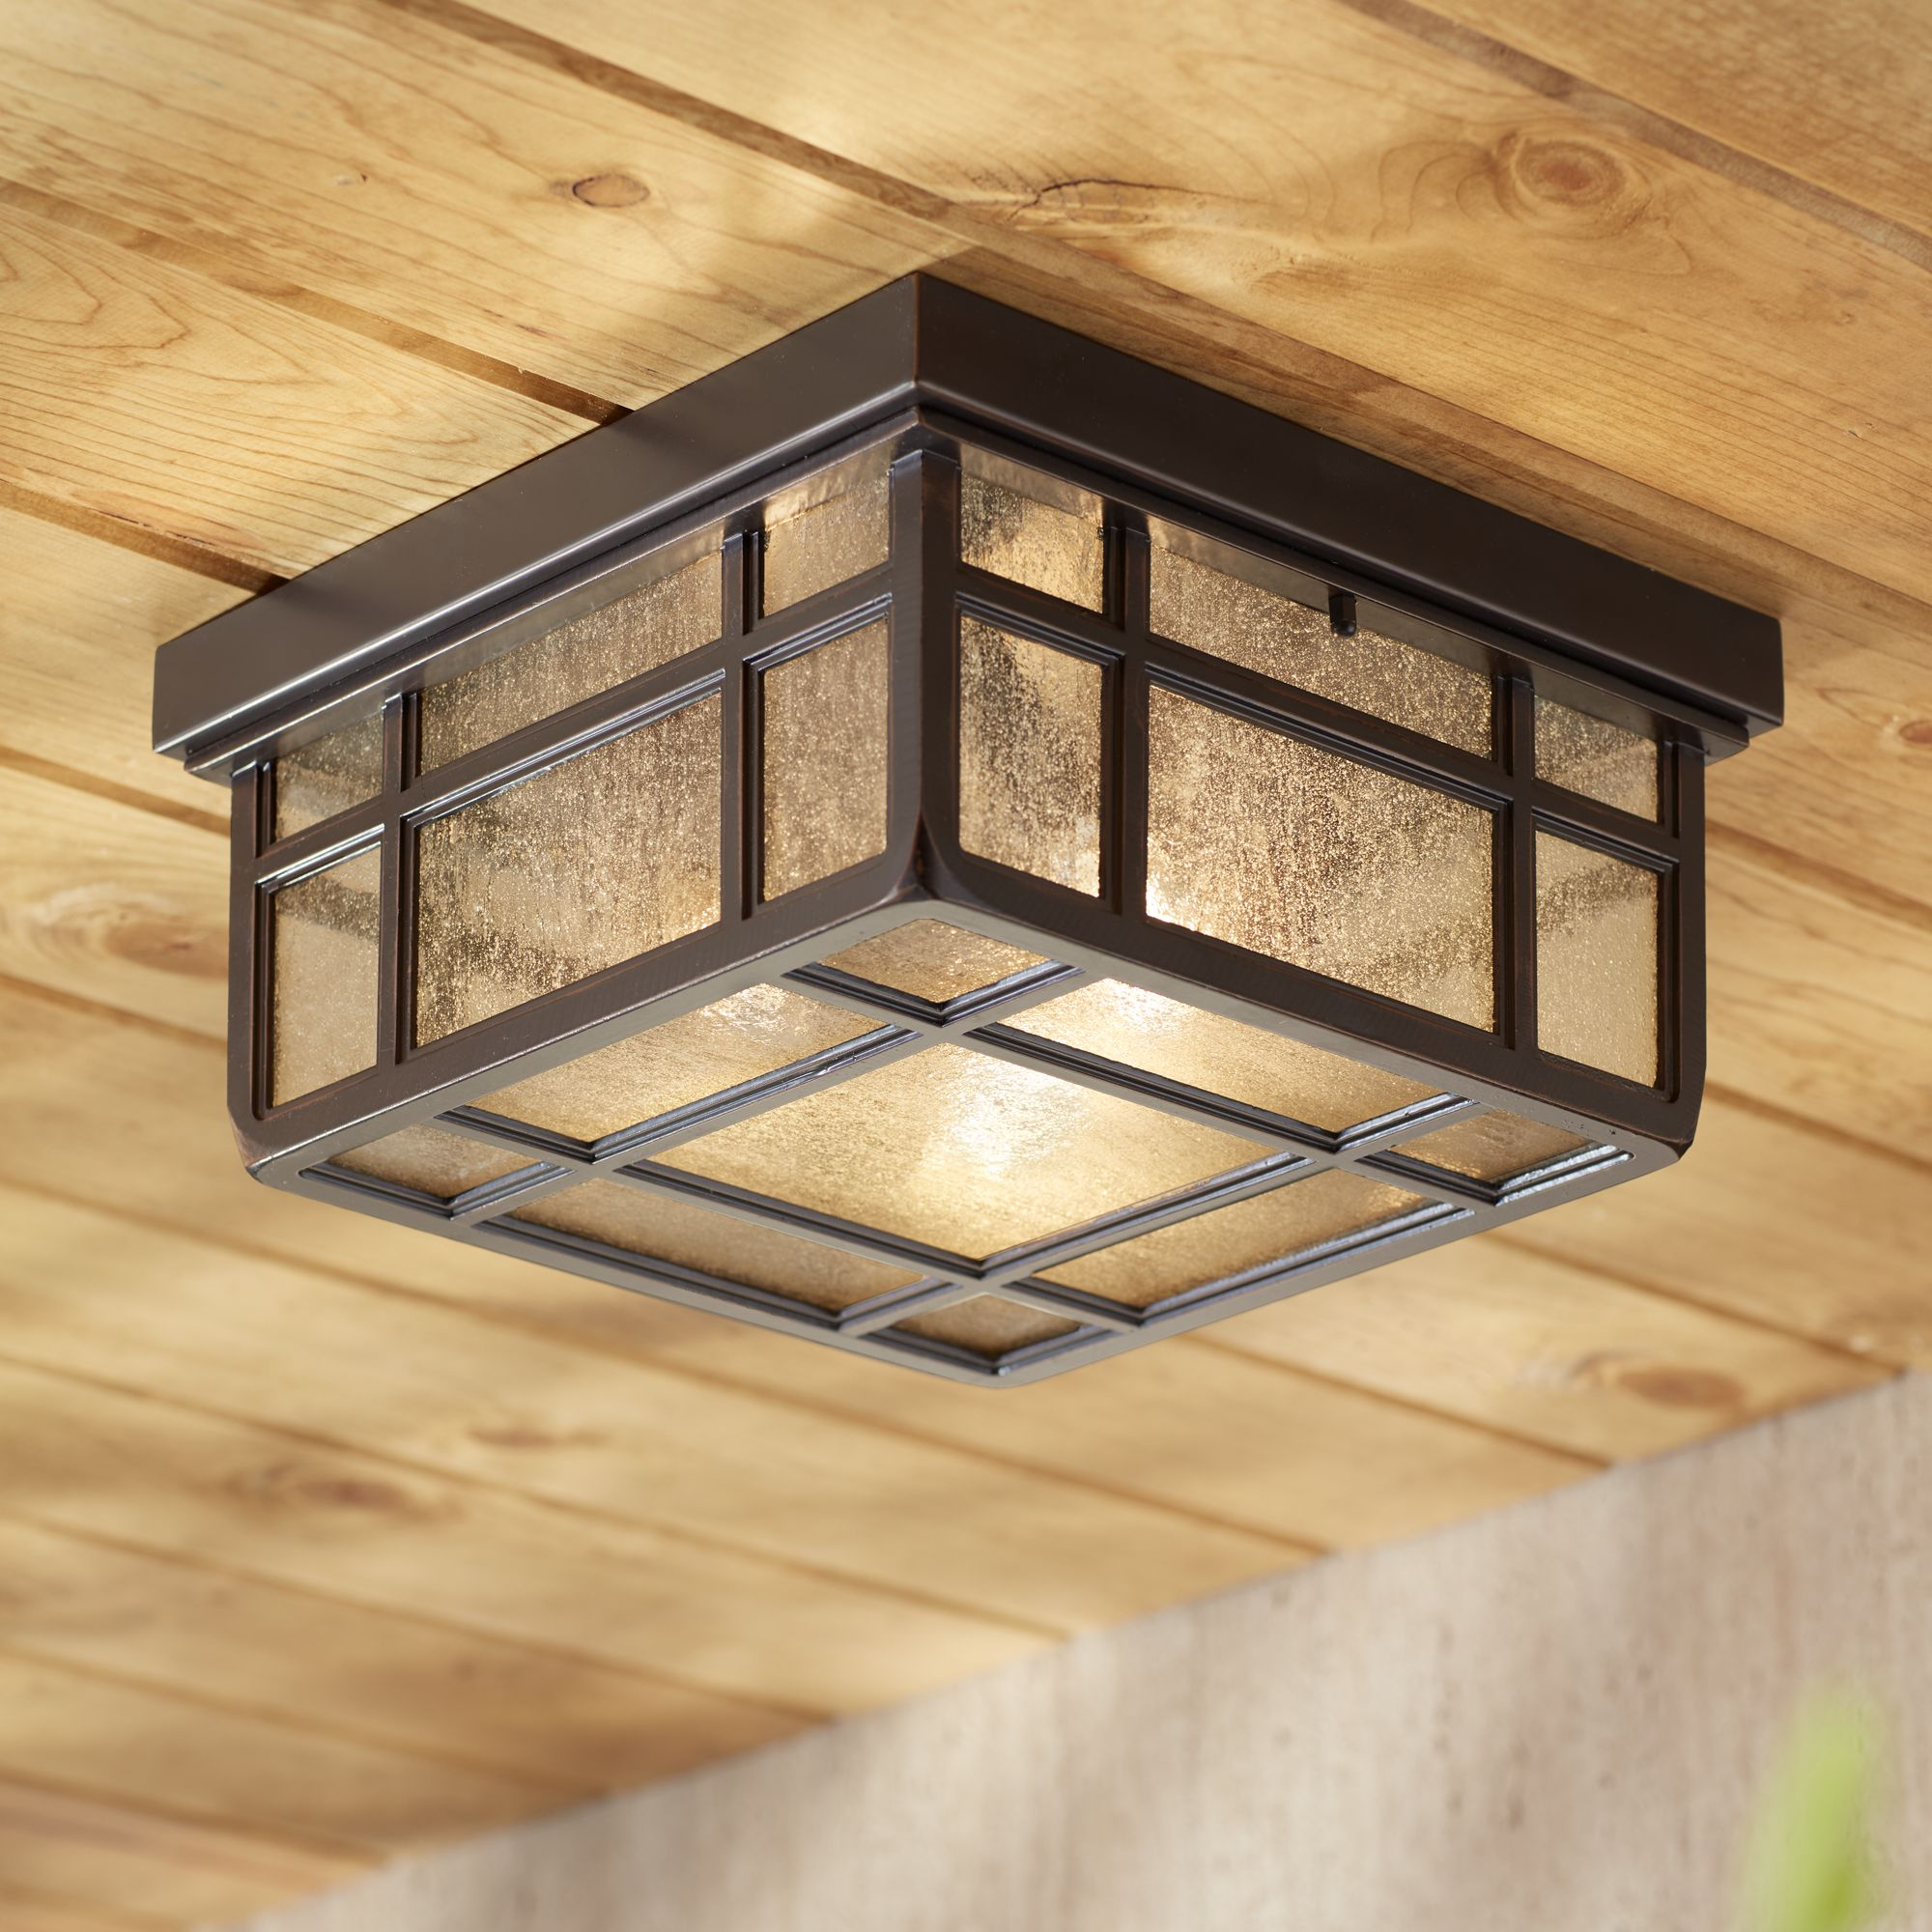 J du J Sierra Craftsman 10 1/2 W Outdoor Ceiling Light & Outdoor Flush Mount Lighting - Fixtures for Patio or Porch | Lamps ... azcodes.com